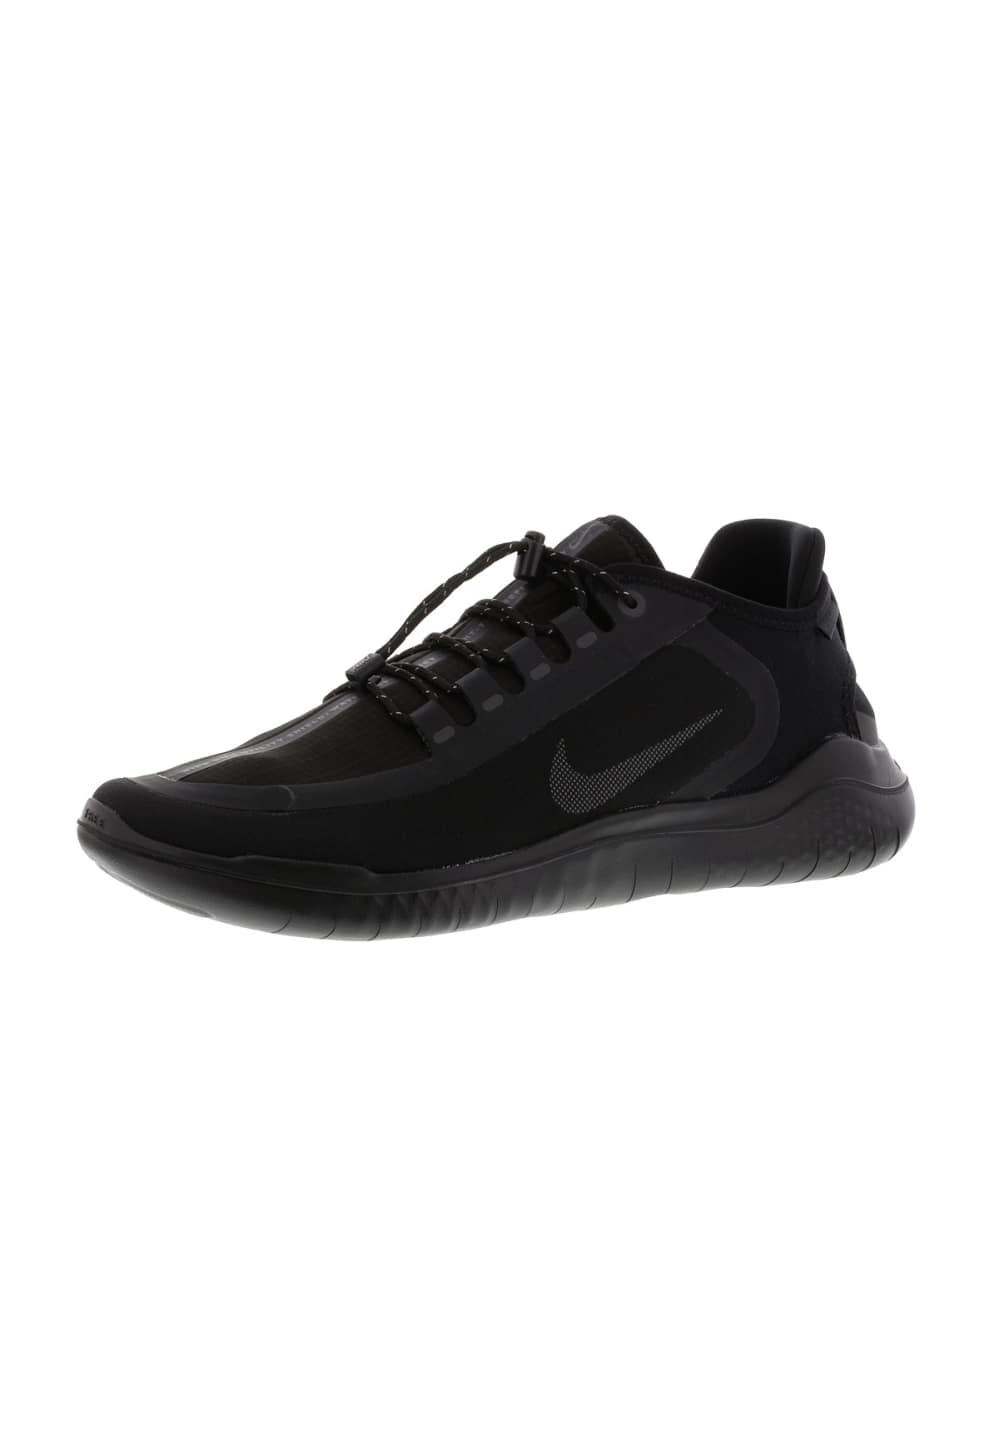 the latest 60275 6cf3b Nike Air Zoom Pegasus 35 Shield - Running shoes for Men - Black